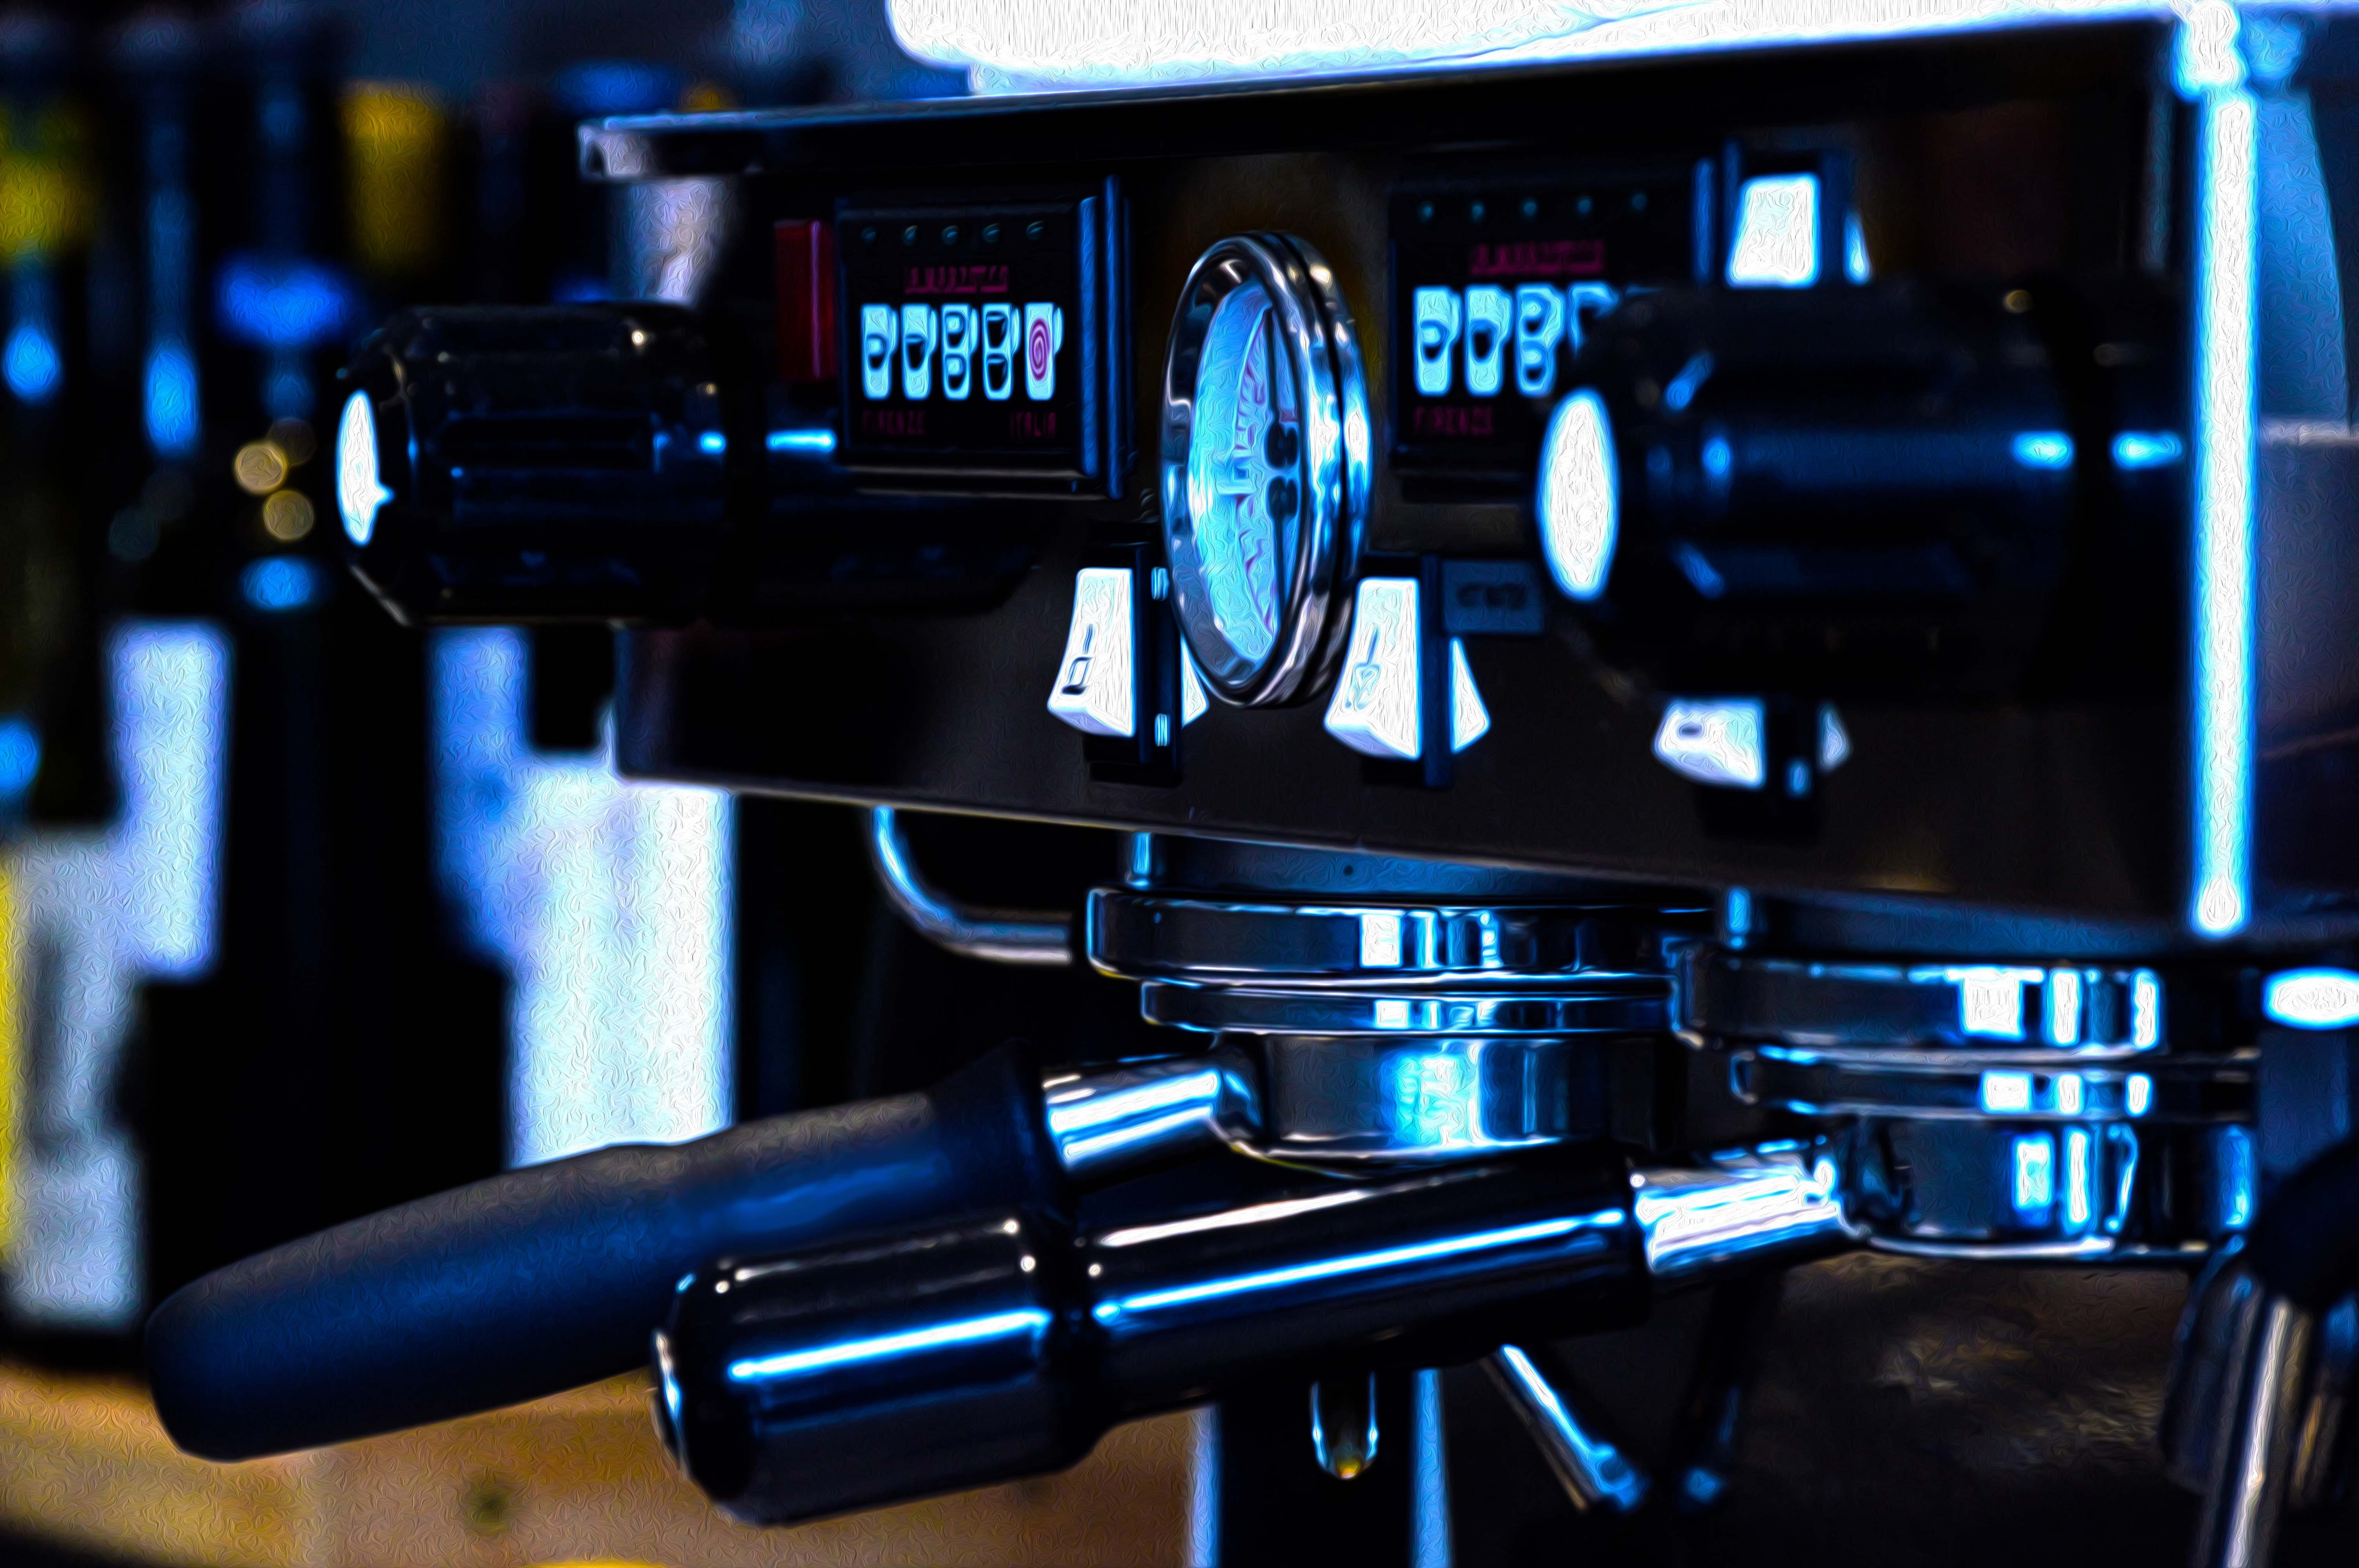 Black and Gray Coffee Machine in Close-up Photography, Business, Close-up, Coffee, Coffee machine, HQ Photo